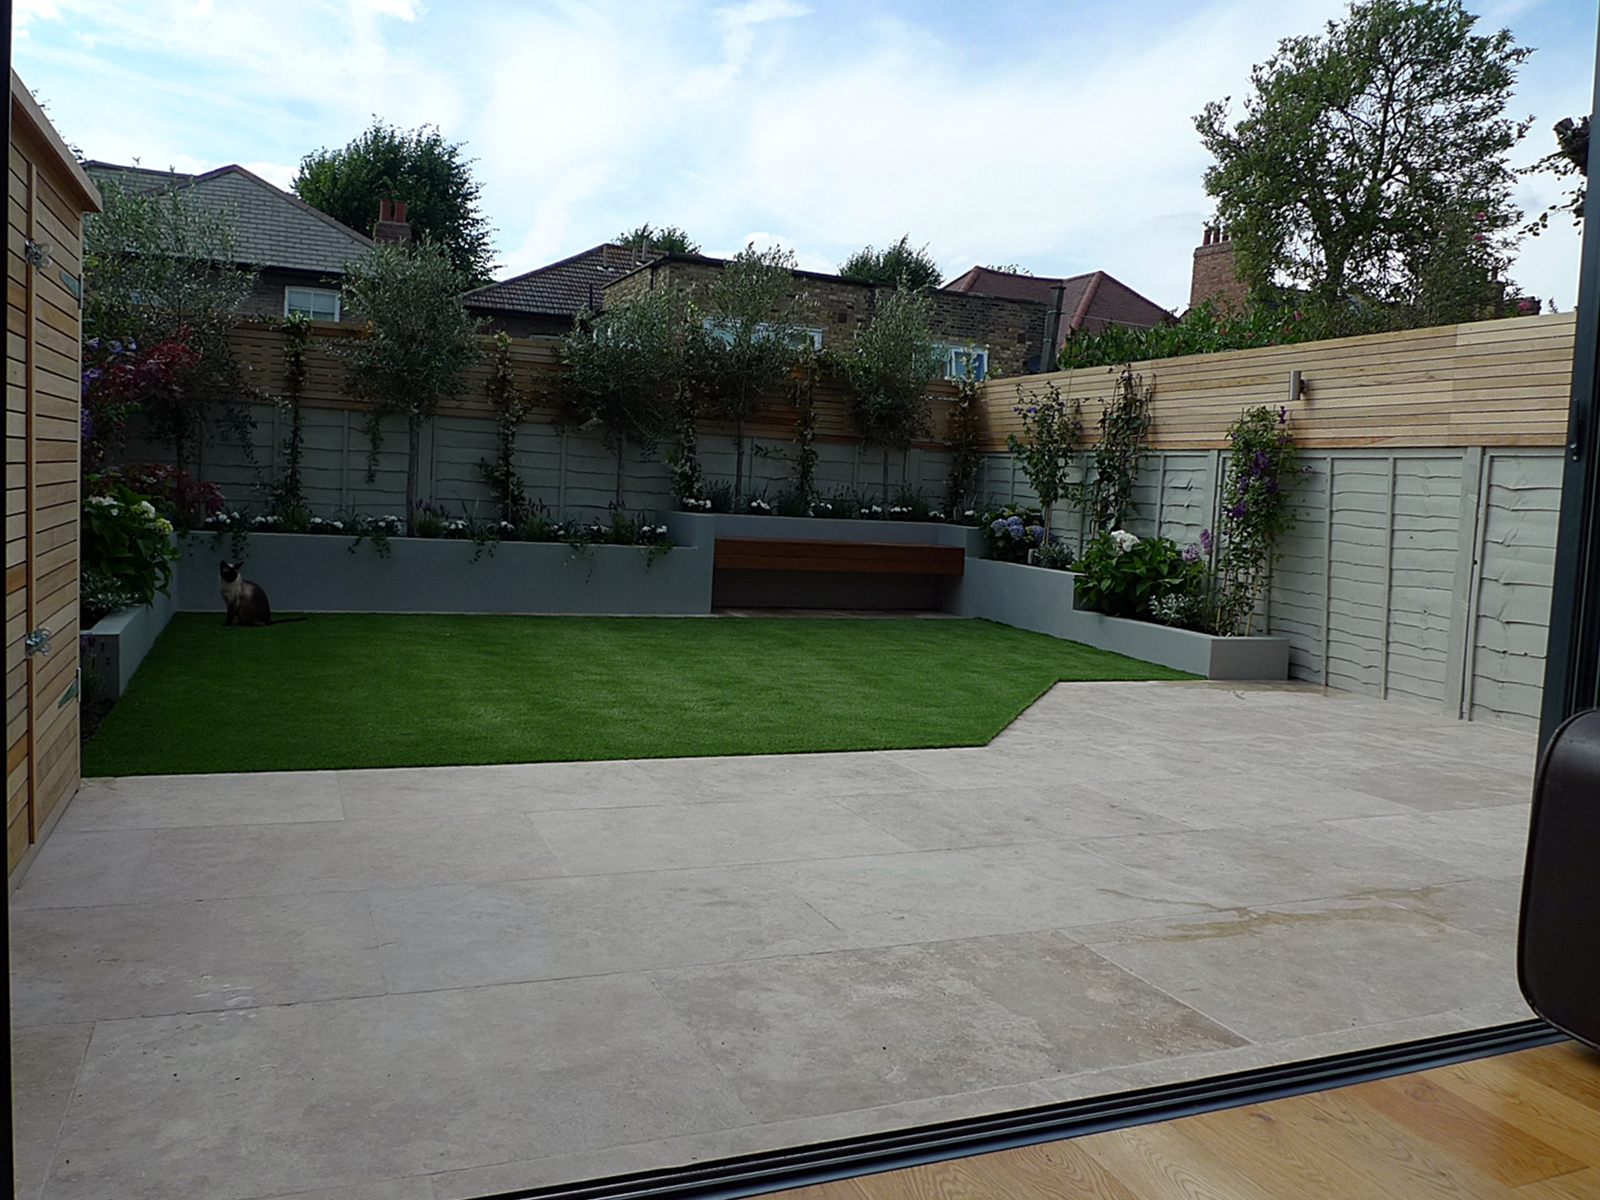 modern garden design and designer balham battersea clapham fulham chelsea dulwich putney wandsworth london